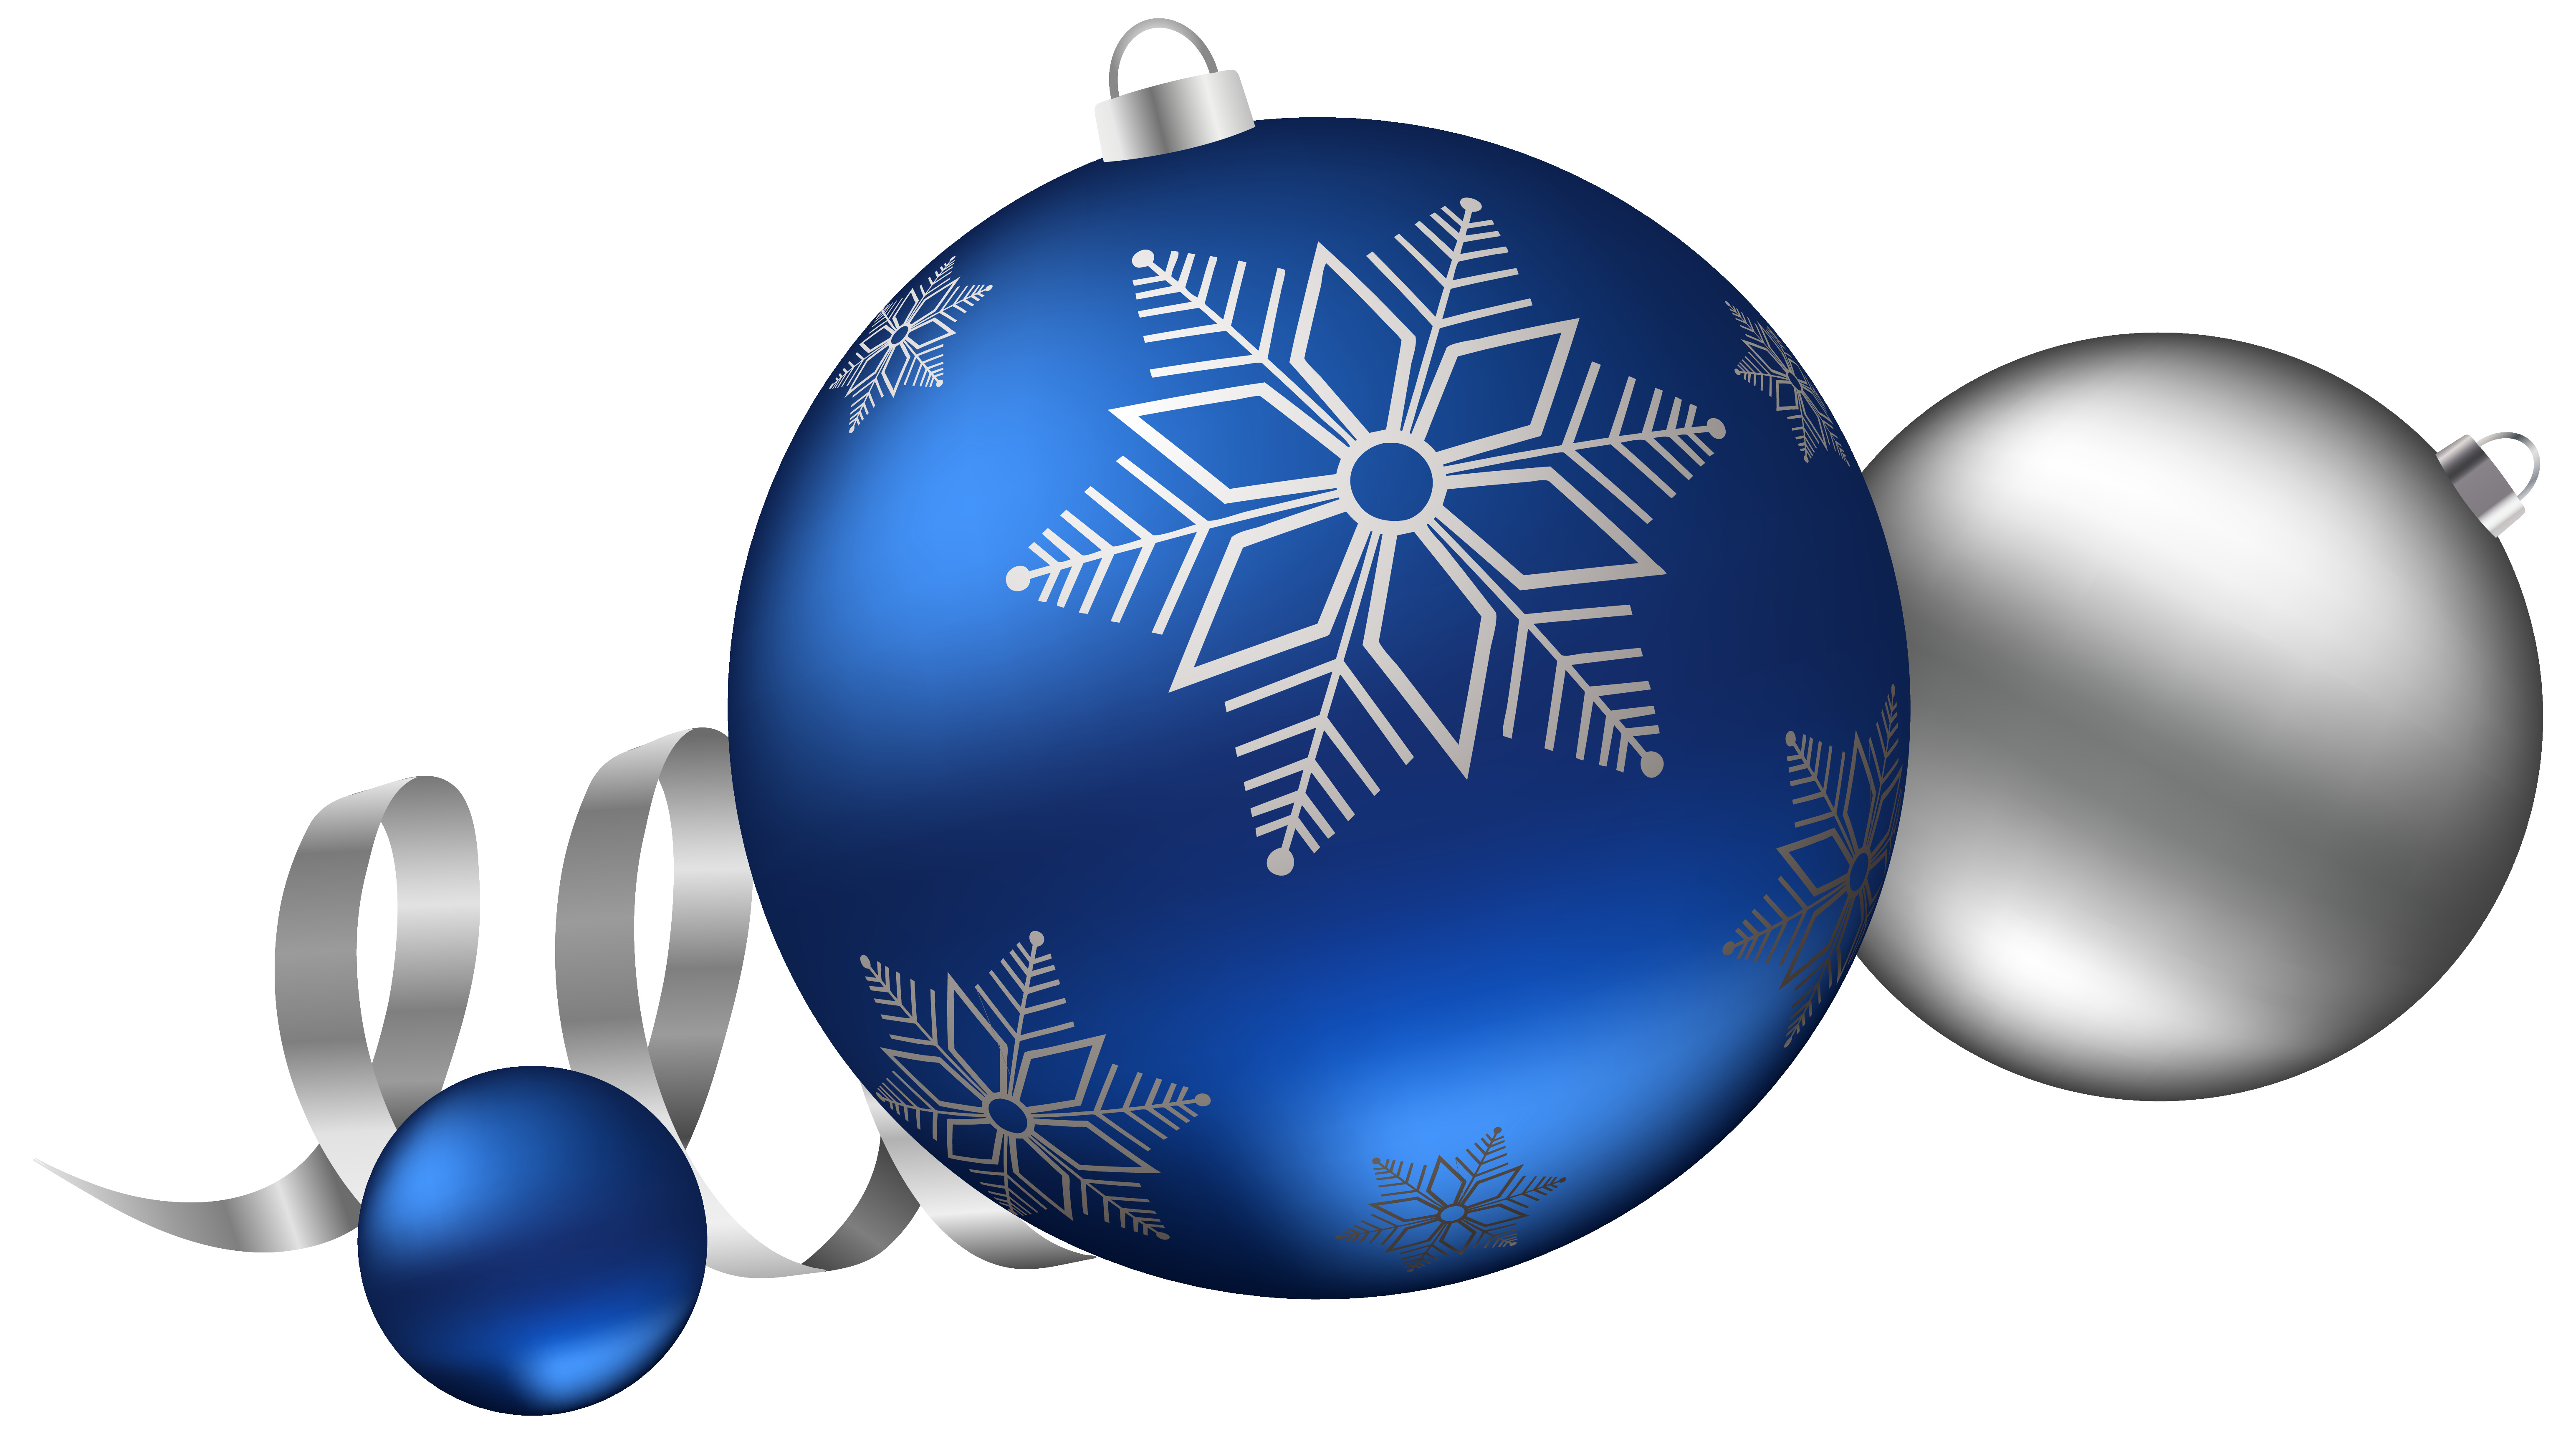 Silver and Blue Christmas Balls Decoration Clipart Image.